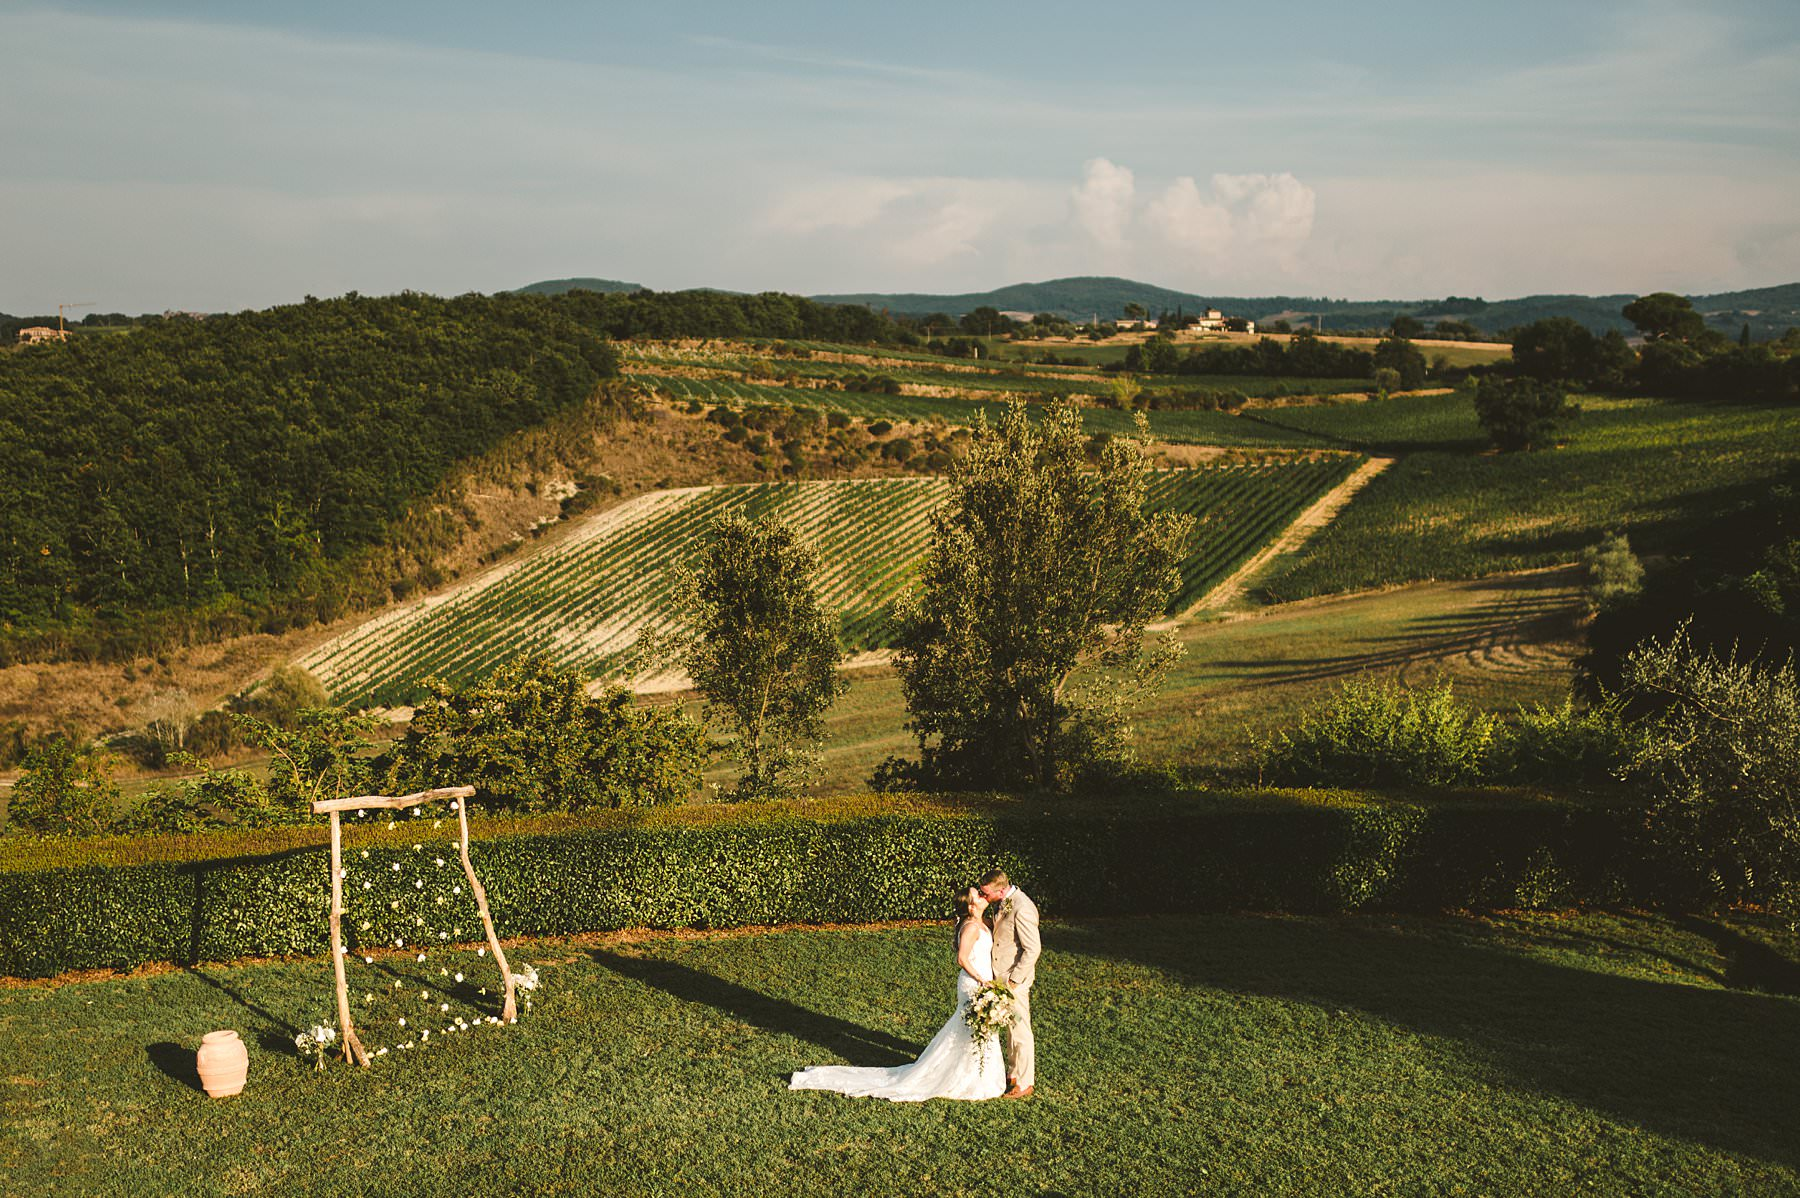 A dreamy small wedding abroad, at Villa Boscarello in Val D'Orcia. Lovely bride and groom portrait with the green rolling hills of Tuscany countryside as background